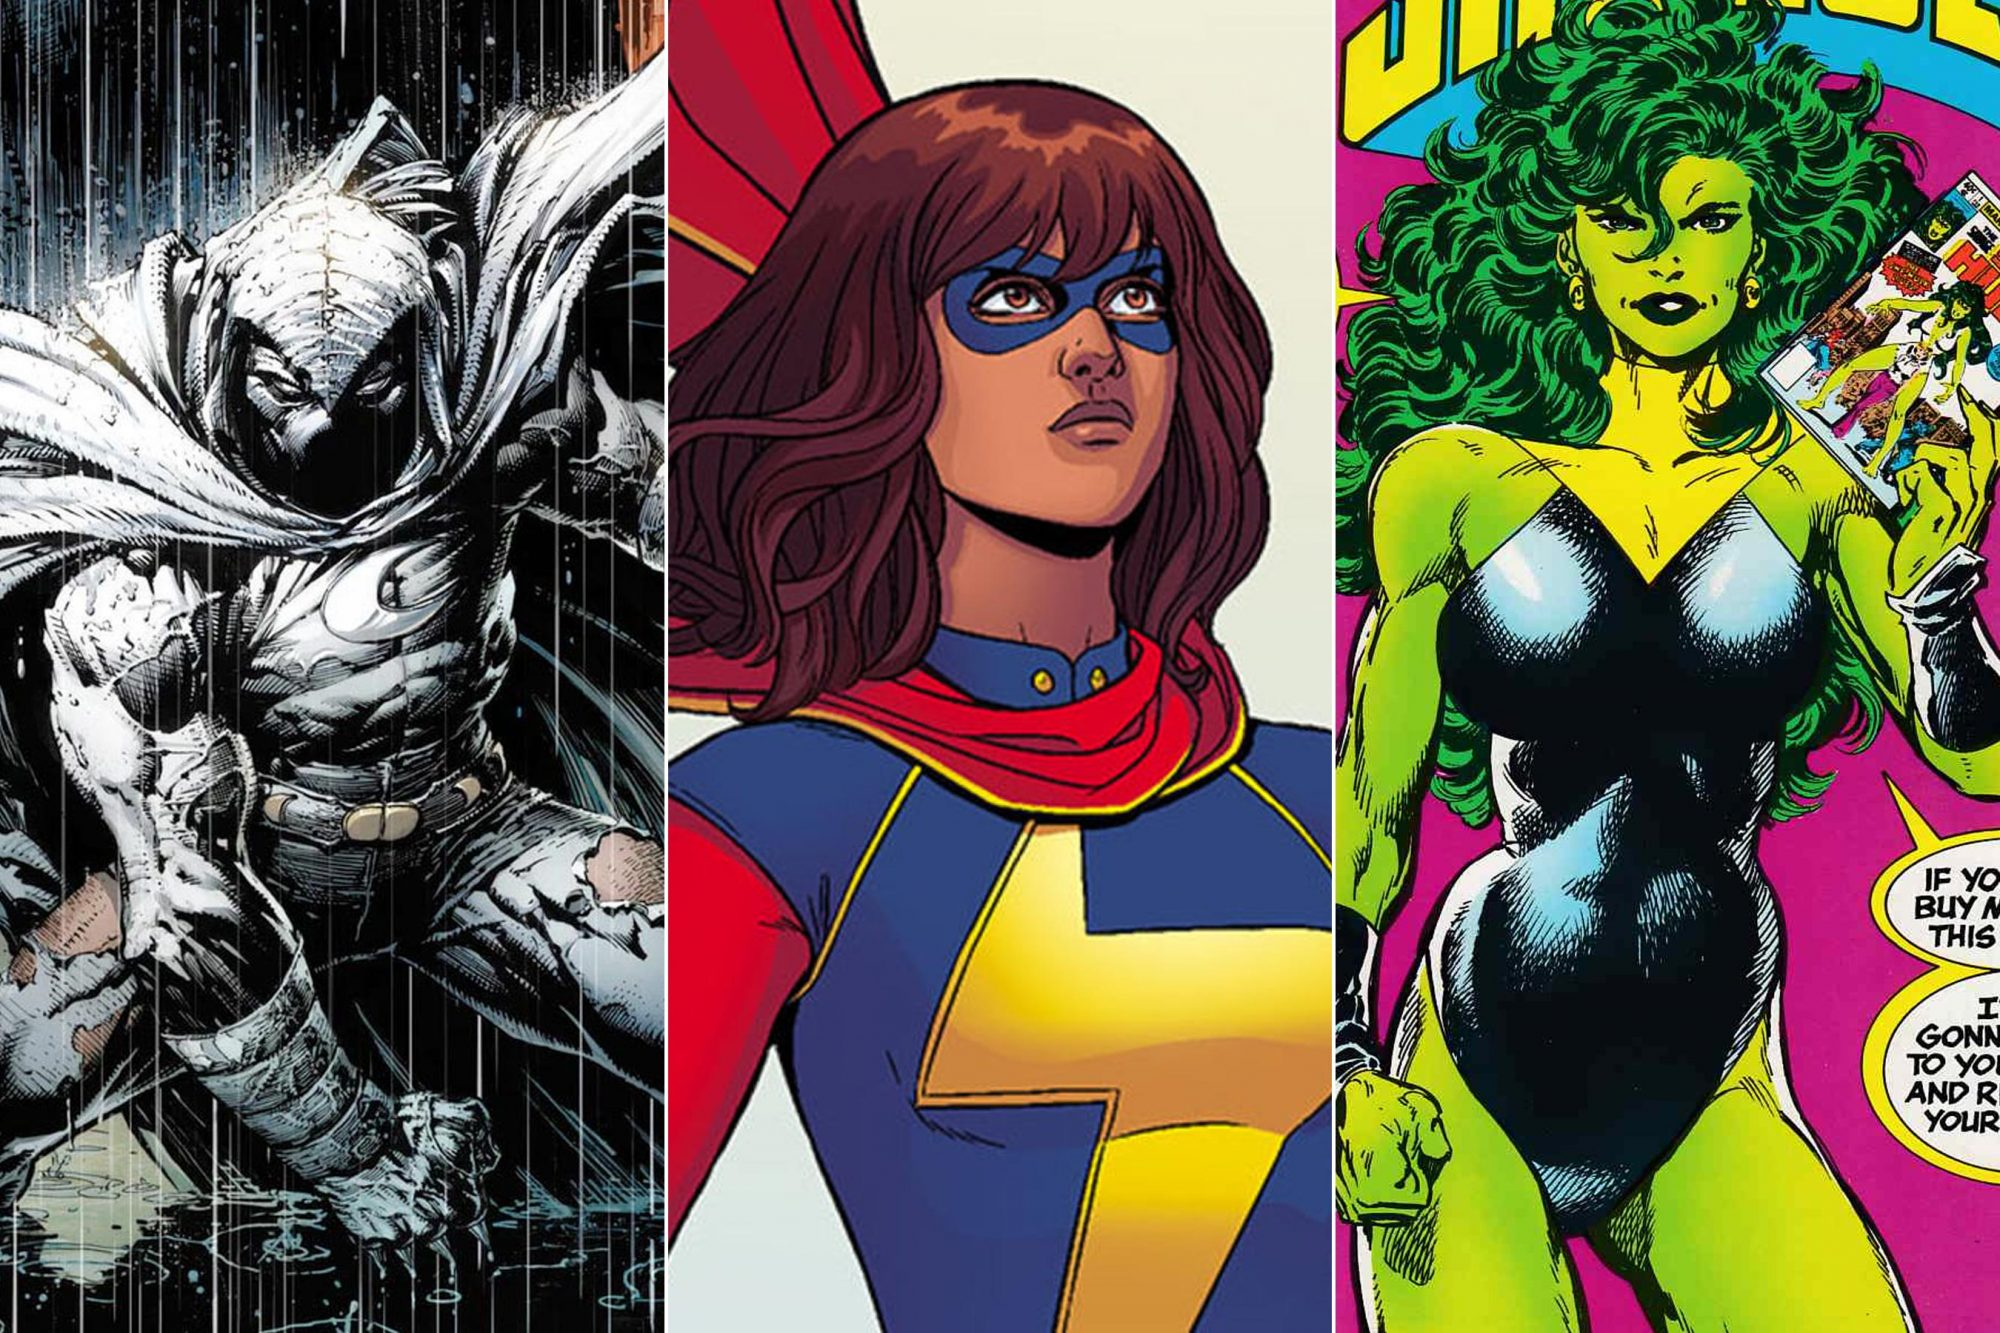 Ms. Marvel, Moon Knight, She-Hulk